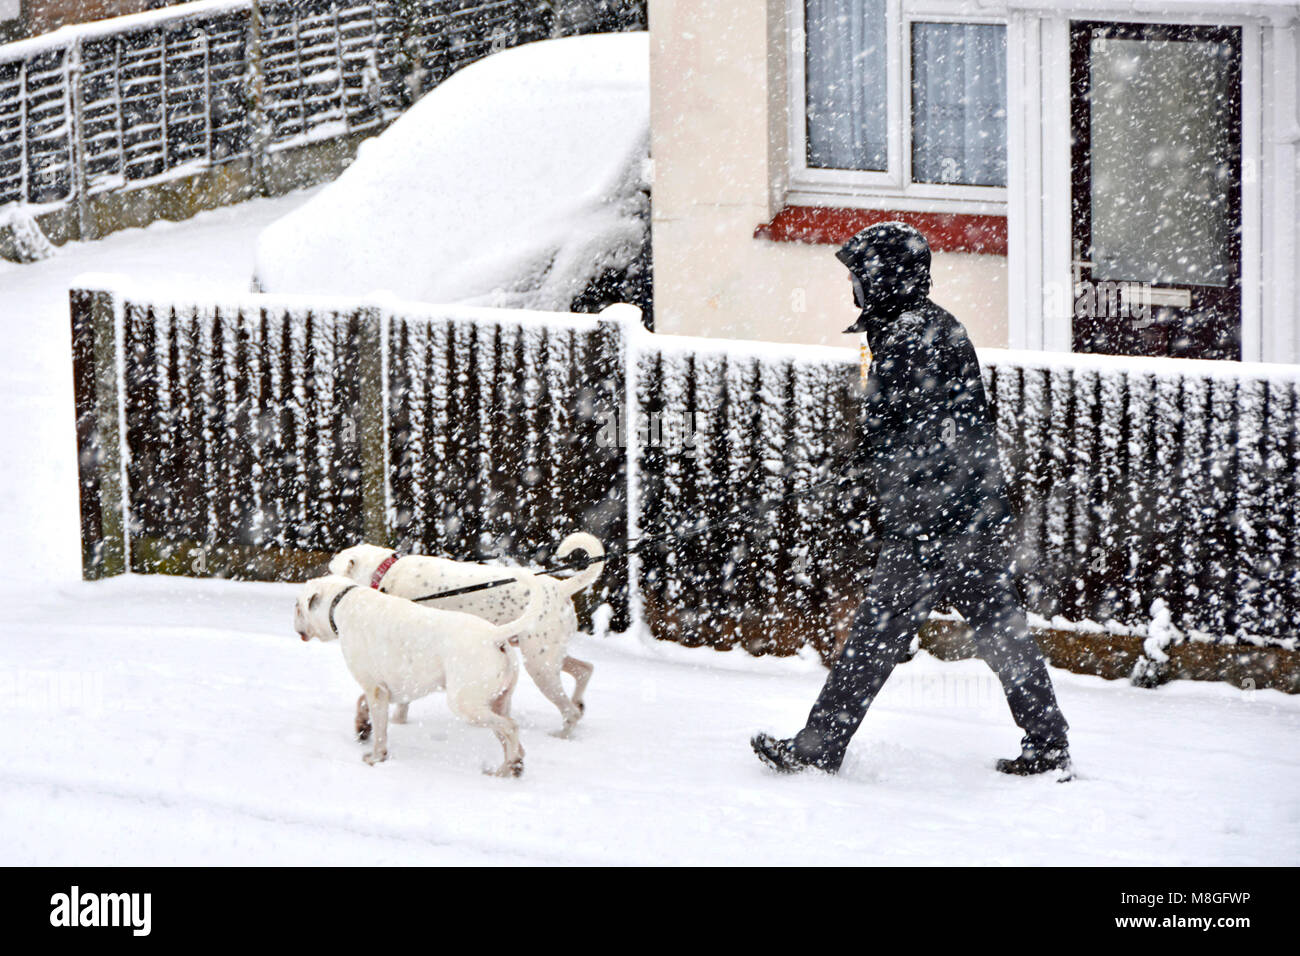 Snowing hard for dog walker man in cold weather winter snow storm scene walking two white dogs along pavement in - Stock Image